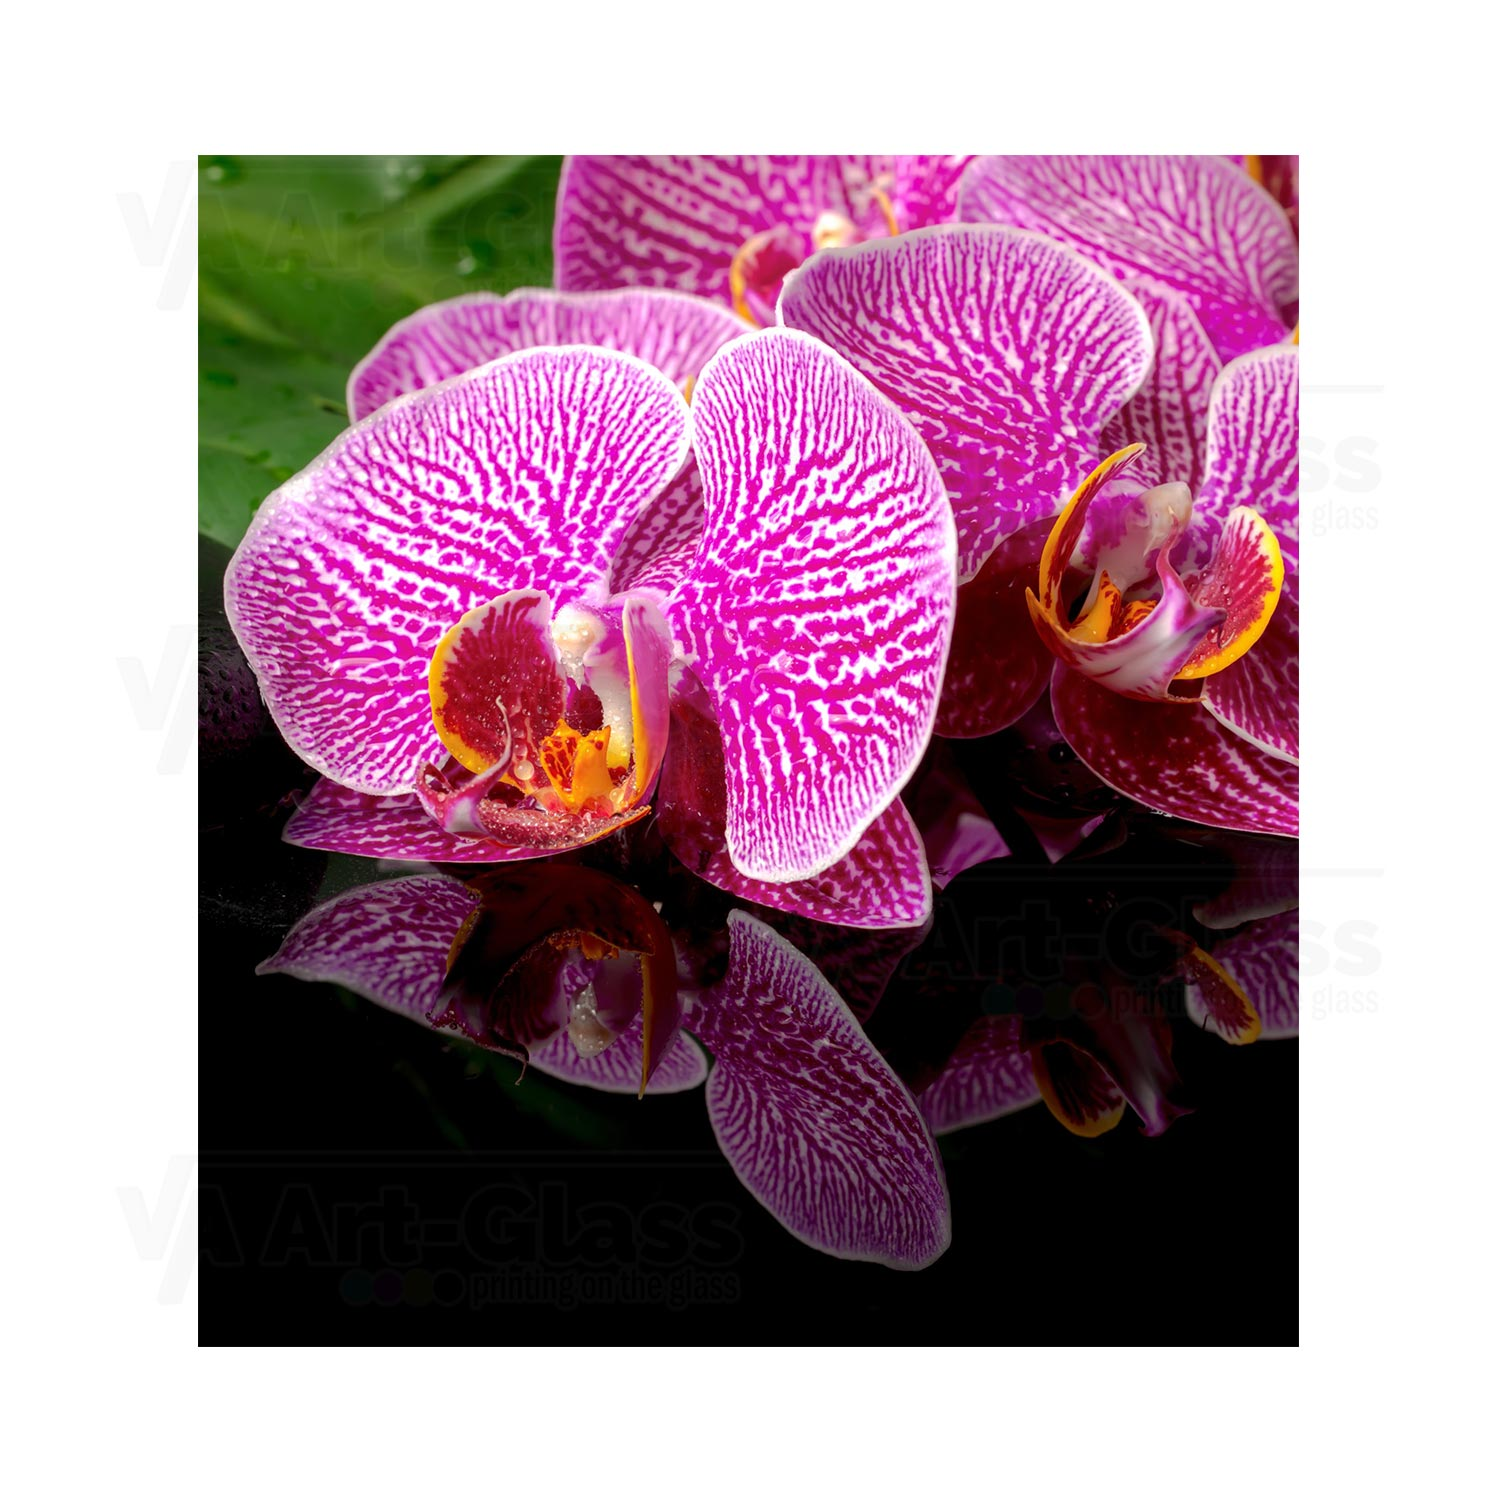 55cm Diameter Adjustable Height 60 75 Cm Coffee Table: Splashback With A Pink Orchid Flower ANY SIZE